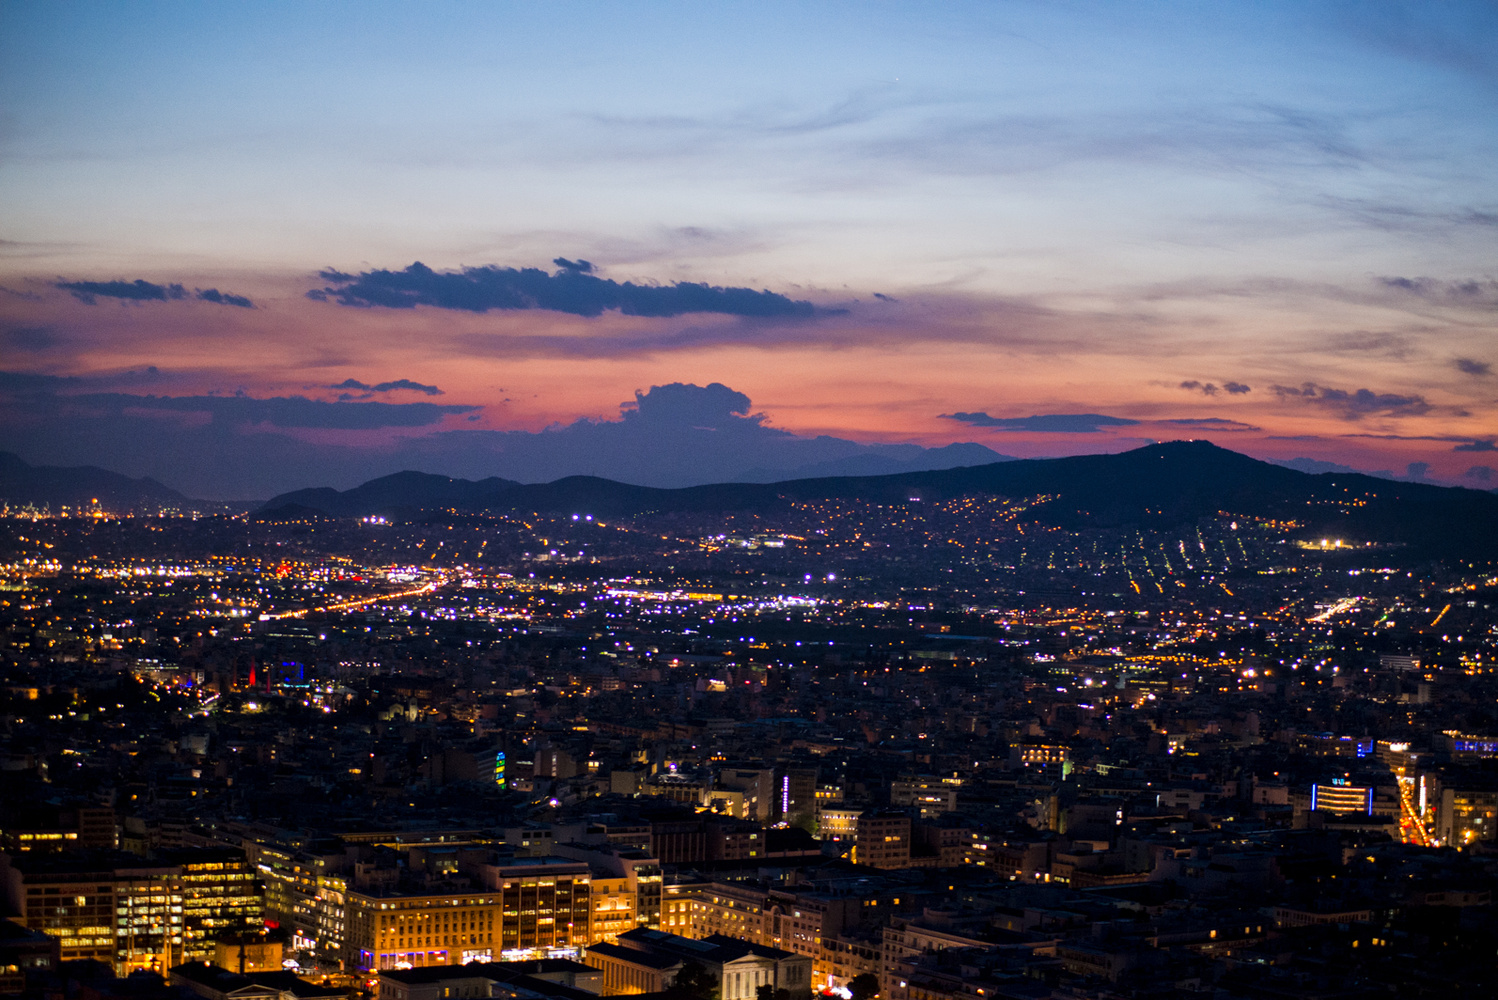 Cityscape - View from Lycabettus Hill by George Stergiopoulos